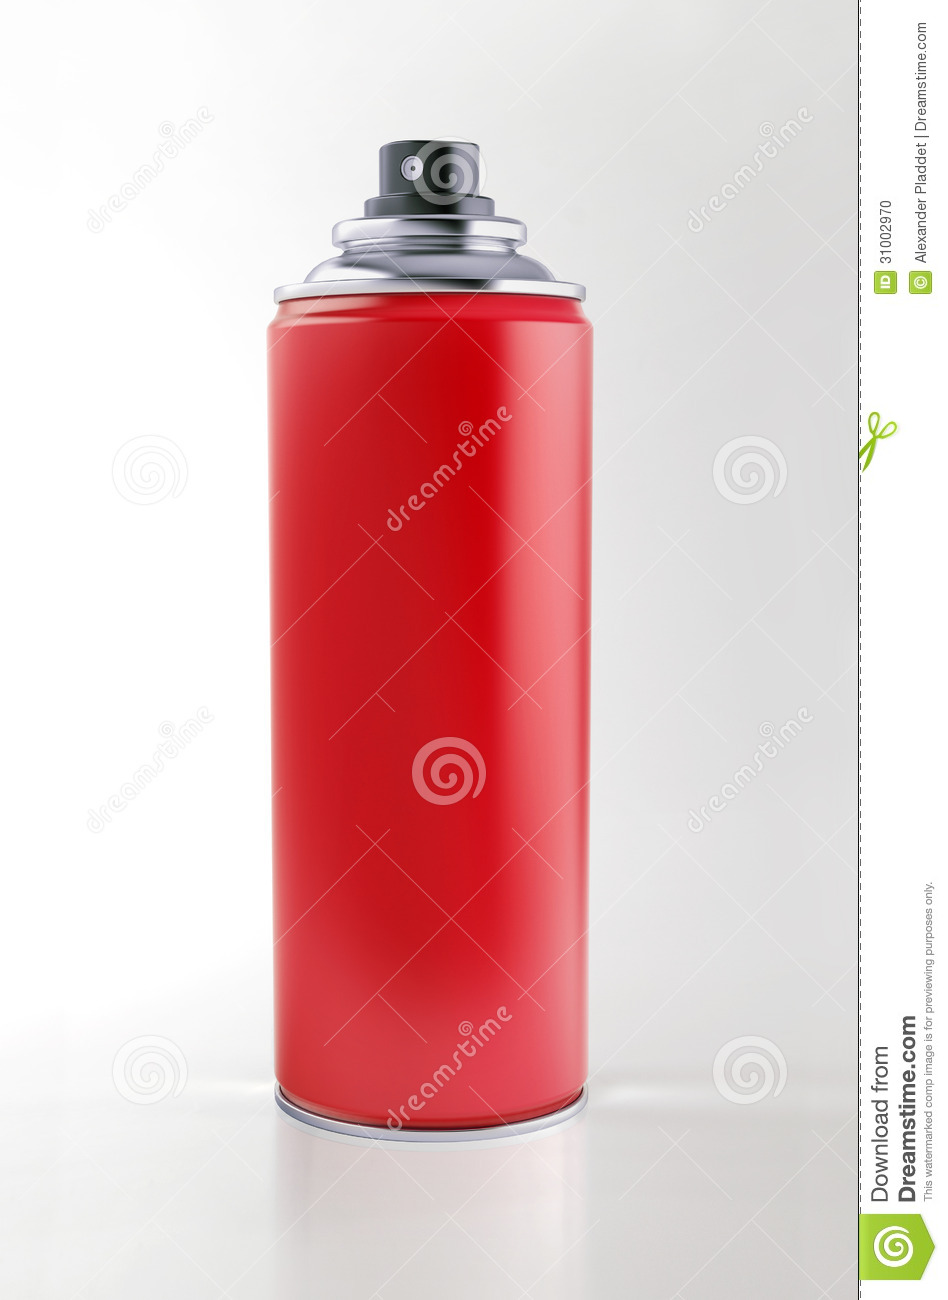 Spray Can Stock Photo Image 31002970